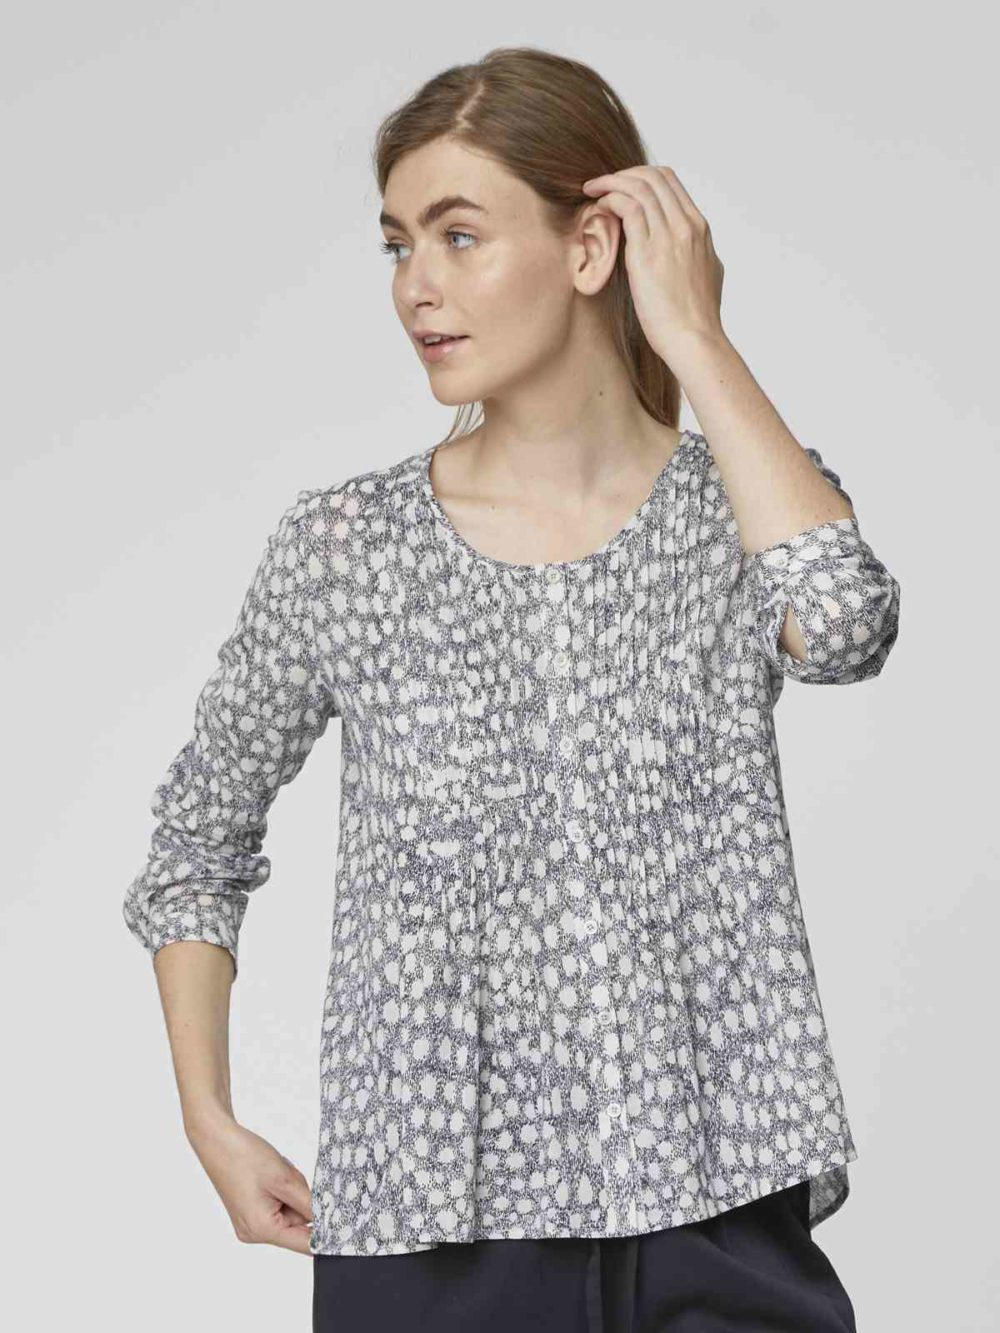 Spot Dash Blouse Thought Clothing Katie Kerr Women's Clothing